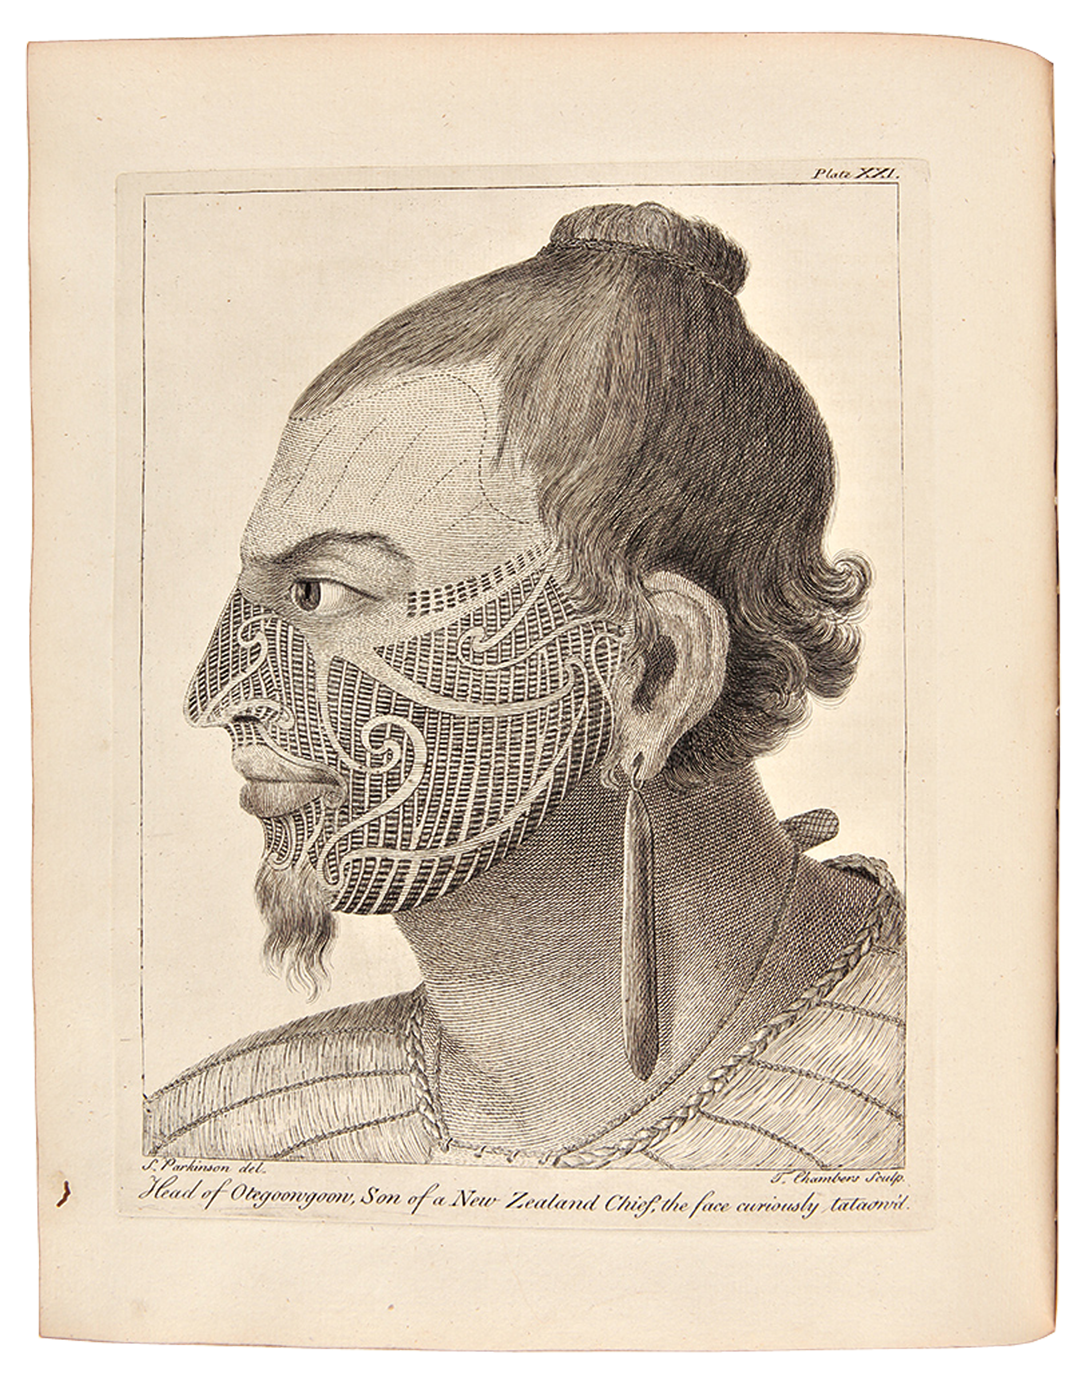 "Head of Otegoongoon, afbeelding uit ""Voyage to the South Seas"" (1773) van Sydney Parkinson"